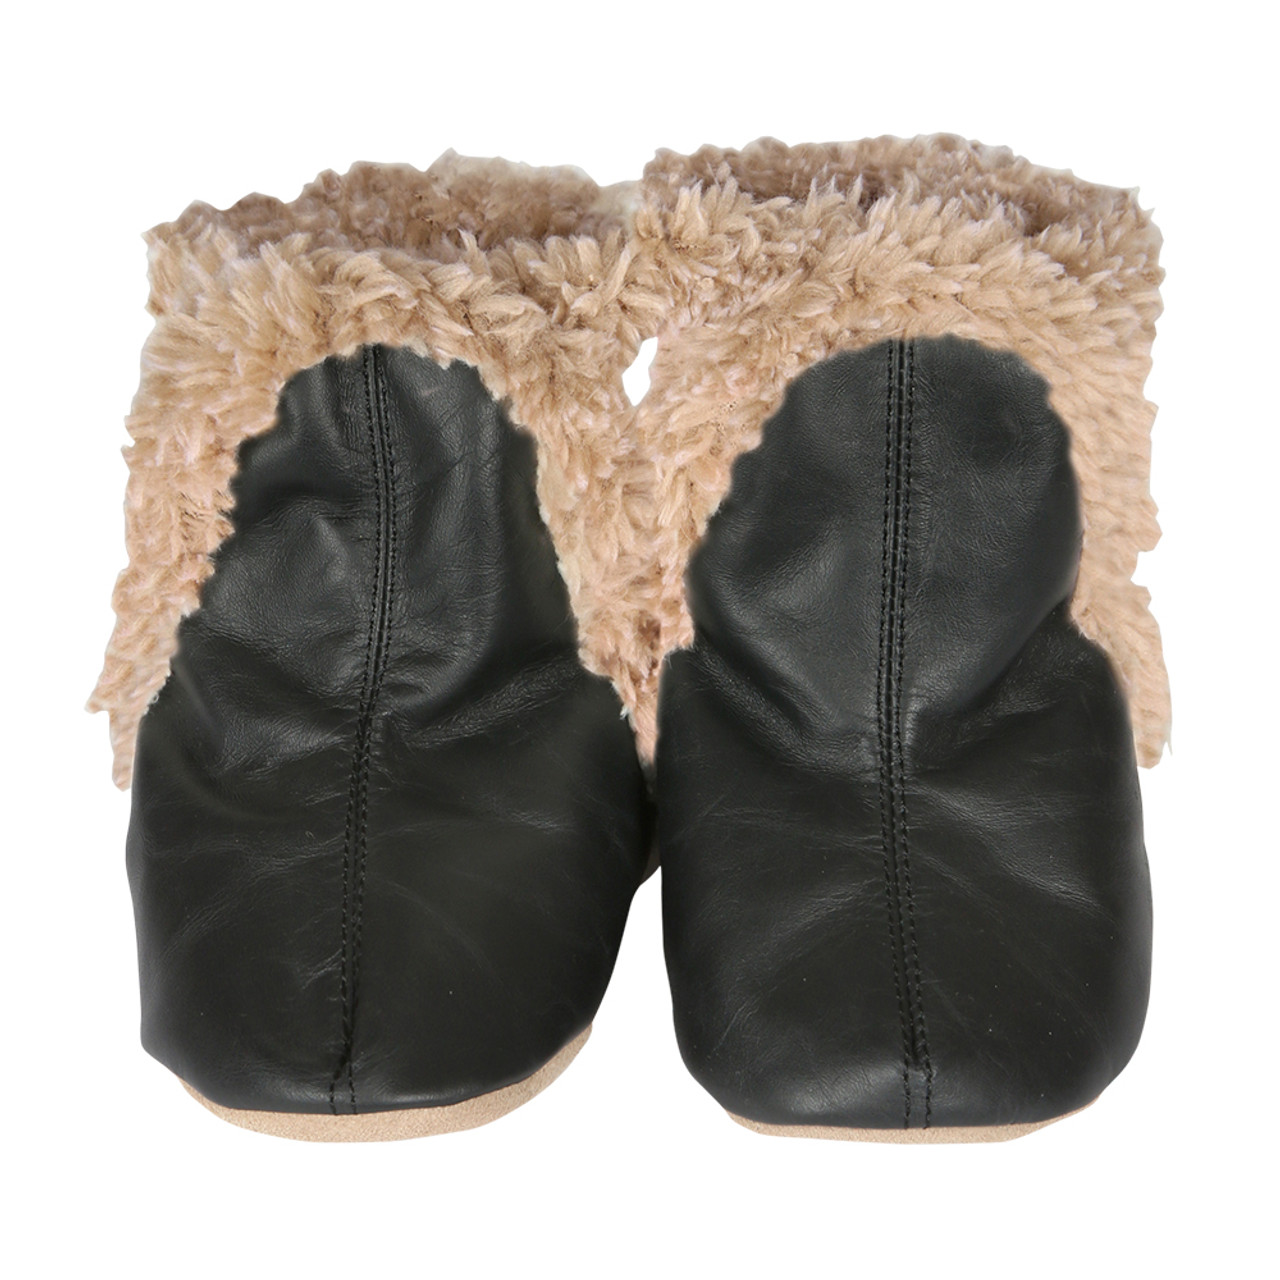 new product 4b4eb 0c8b1 Robeez Classic Baby Boots Black Soft Soles